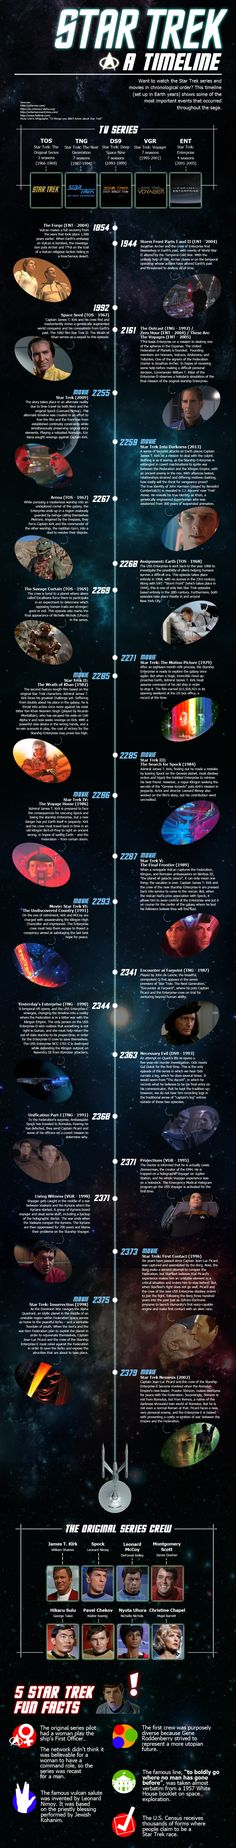 Star Trek Episodes Timeline Graphic.